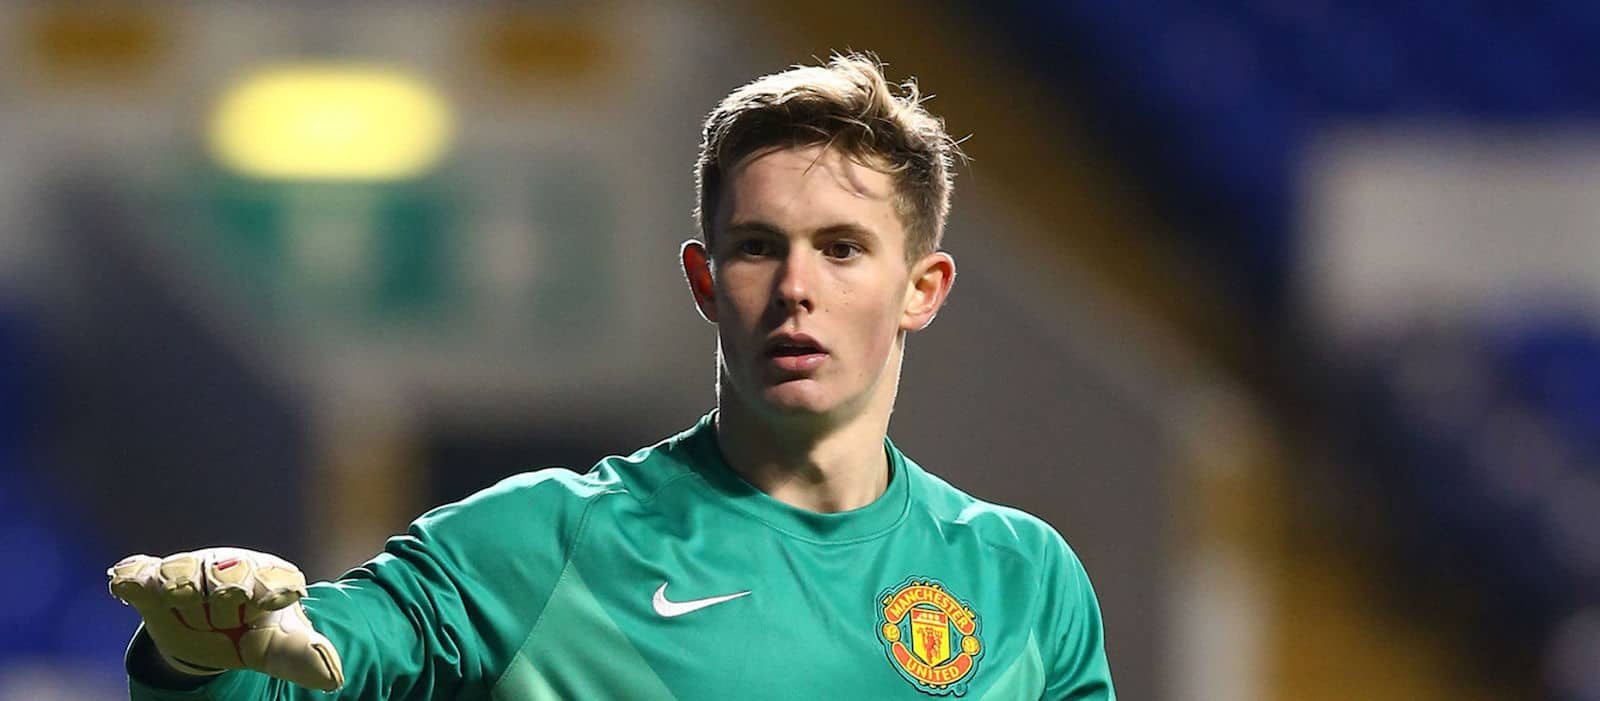 Dean Henderson wants to follow in Rashford and Fosu-Mensah's footsteps at Man United